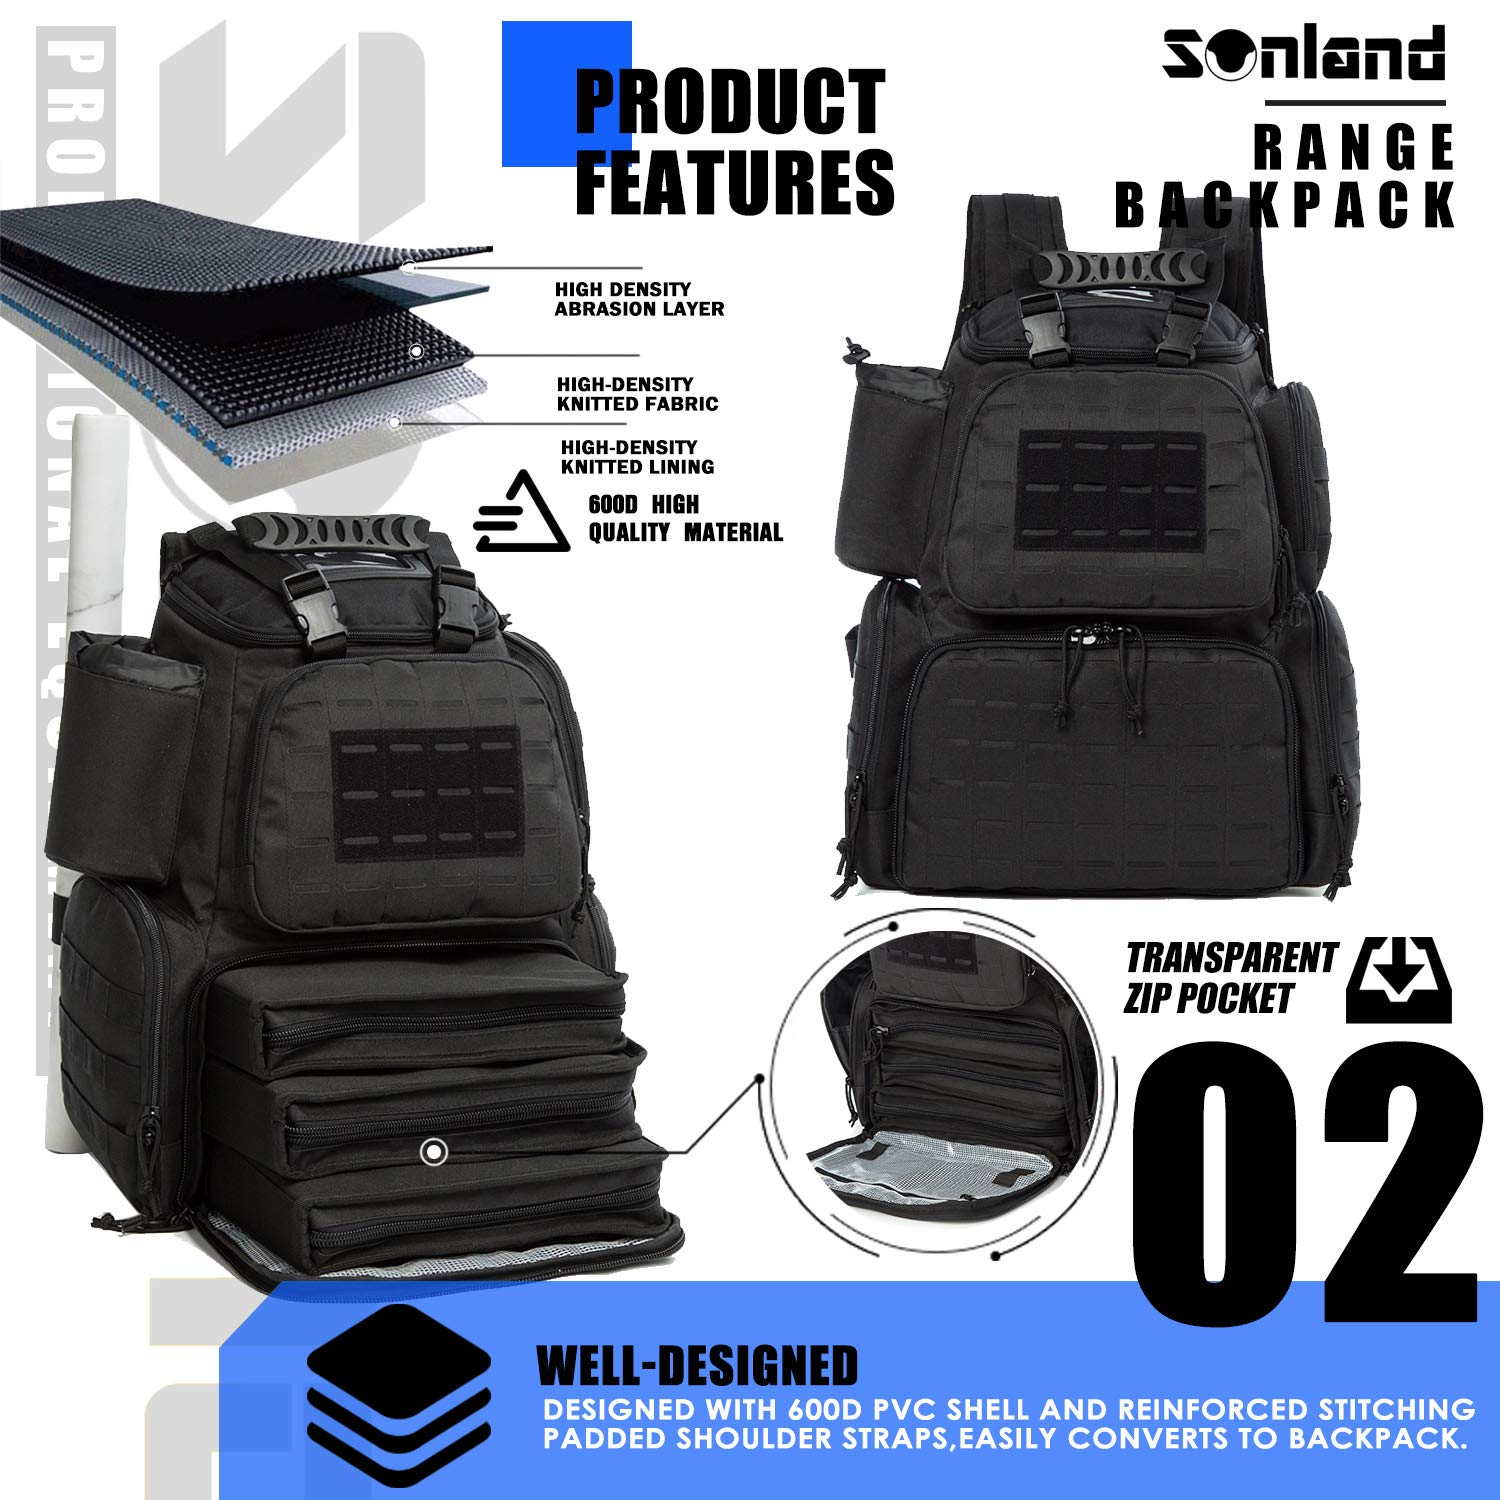 SUNLAND Range Bag Backpack,Gun Backpack with 3-Pistol Case and Protective Rain Cover,Tactical molle System & Lockable zippers-18'' x 14'' x 8'' (Blk) by SUNLAND (Image #3)